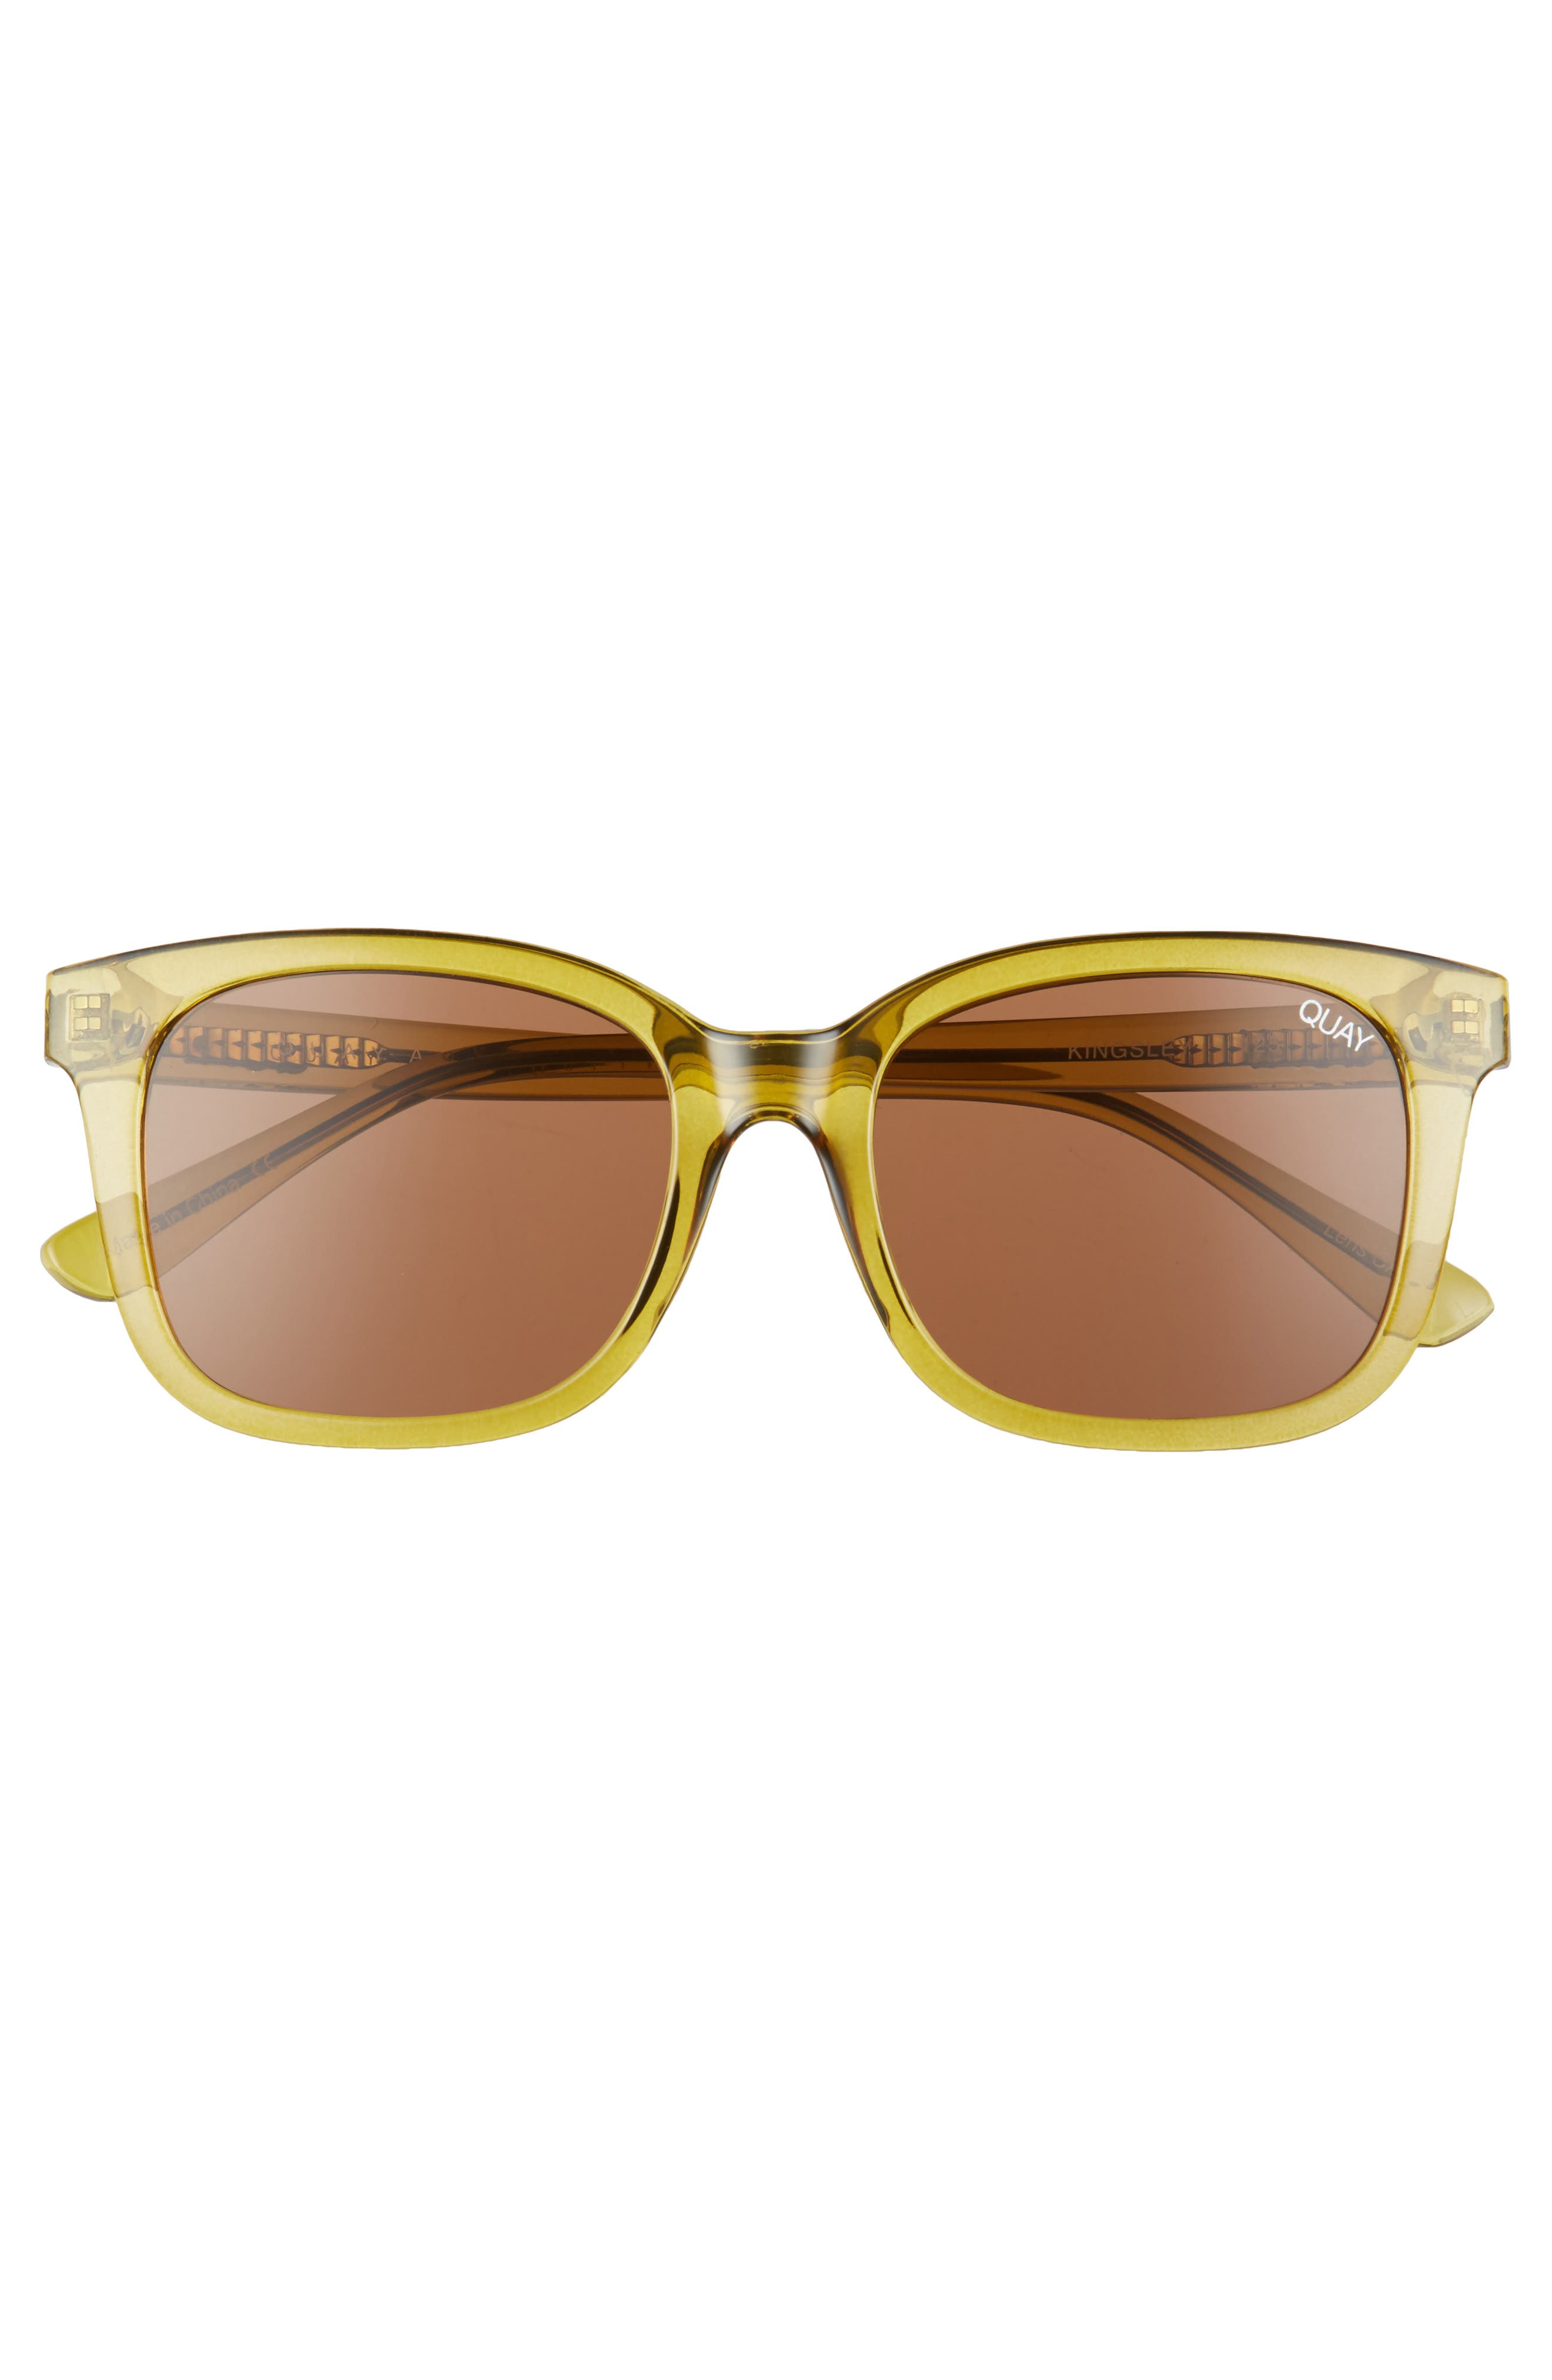 Kingsley 52mm Sunglasses,                             Alternate thumbnail 2, color,                             Olive/ Brown